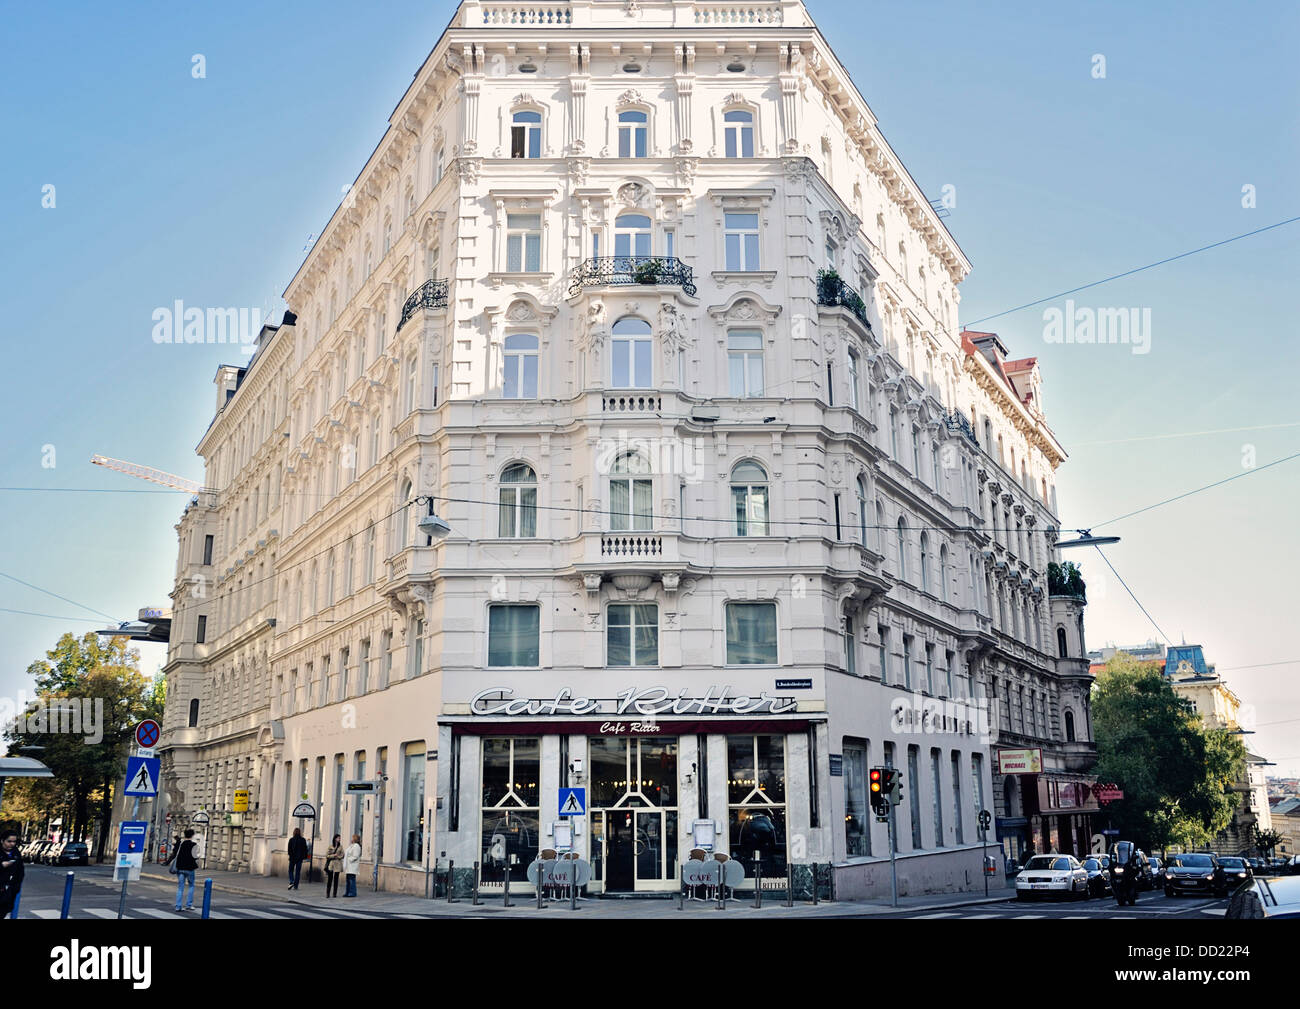 Cafe Ritter Stock Photos Cafe Ritter Stock Images Alamy